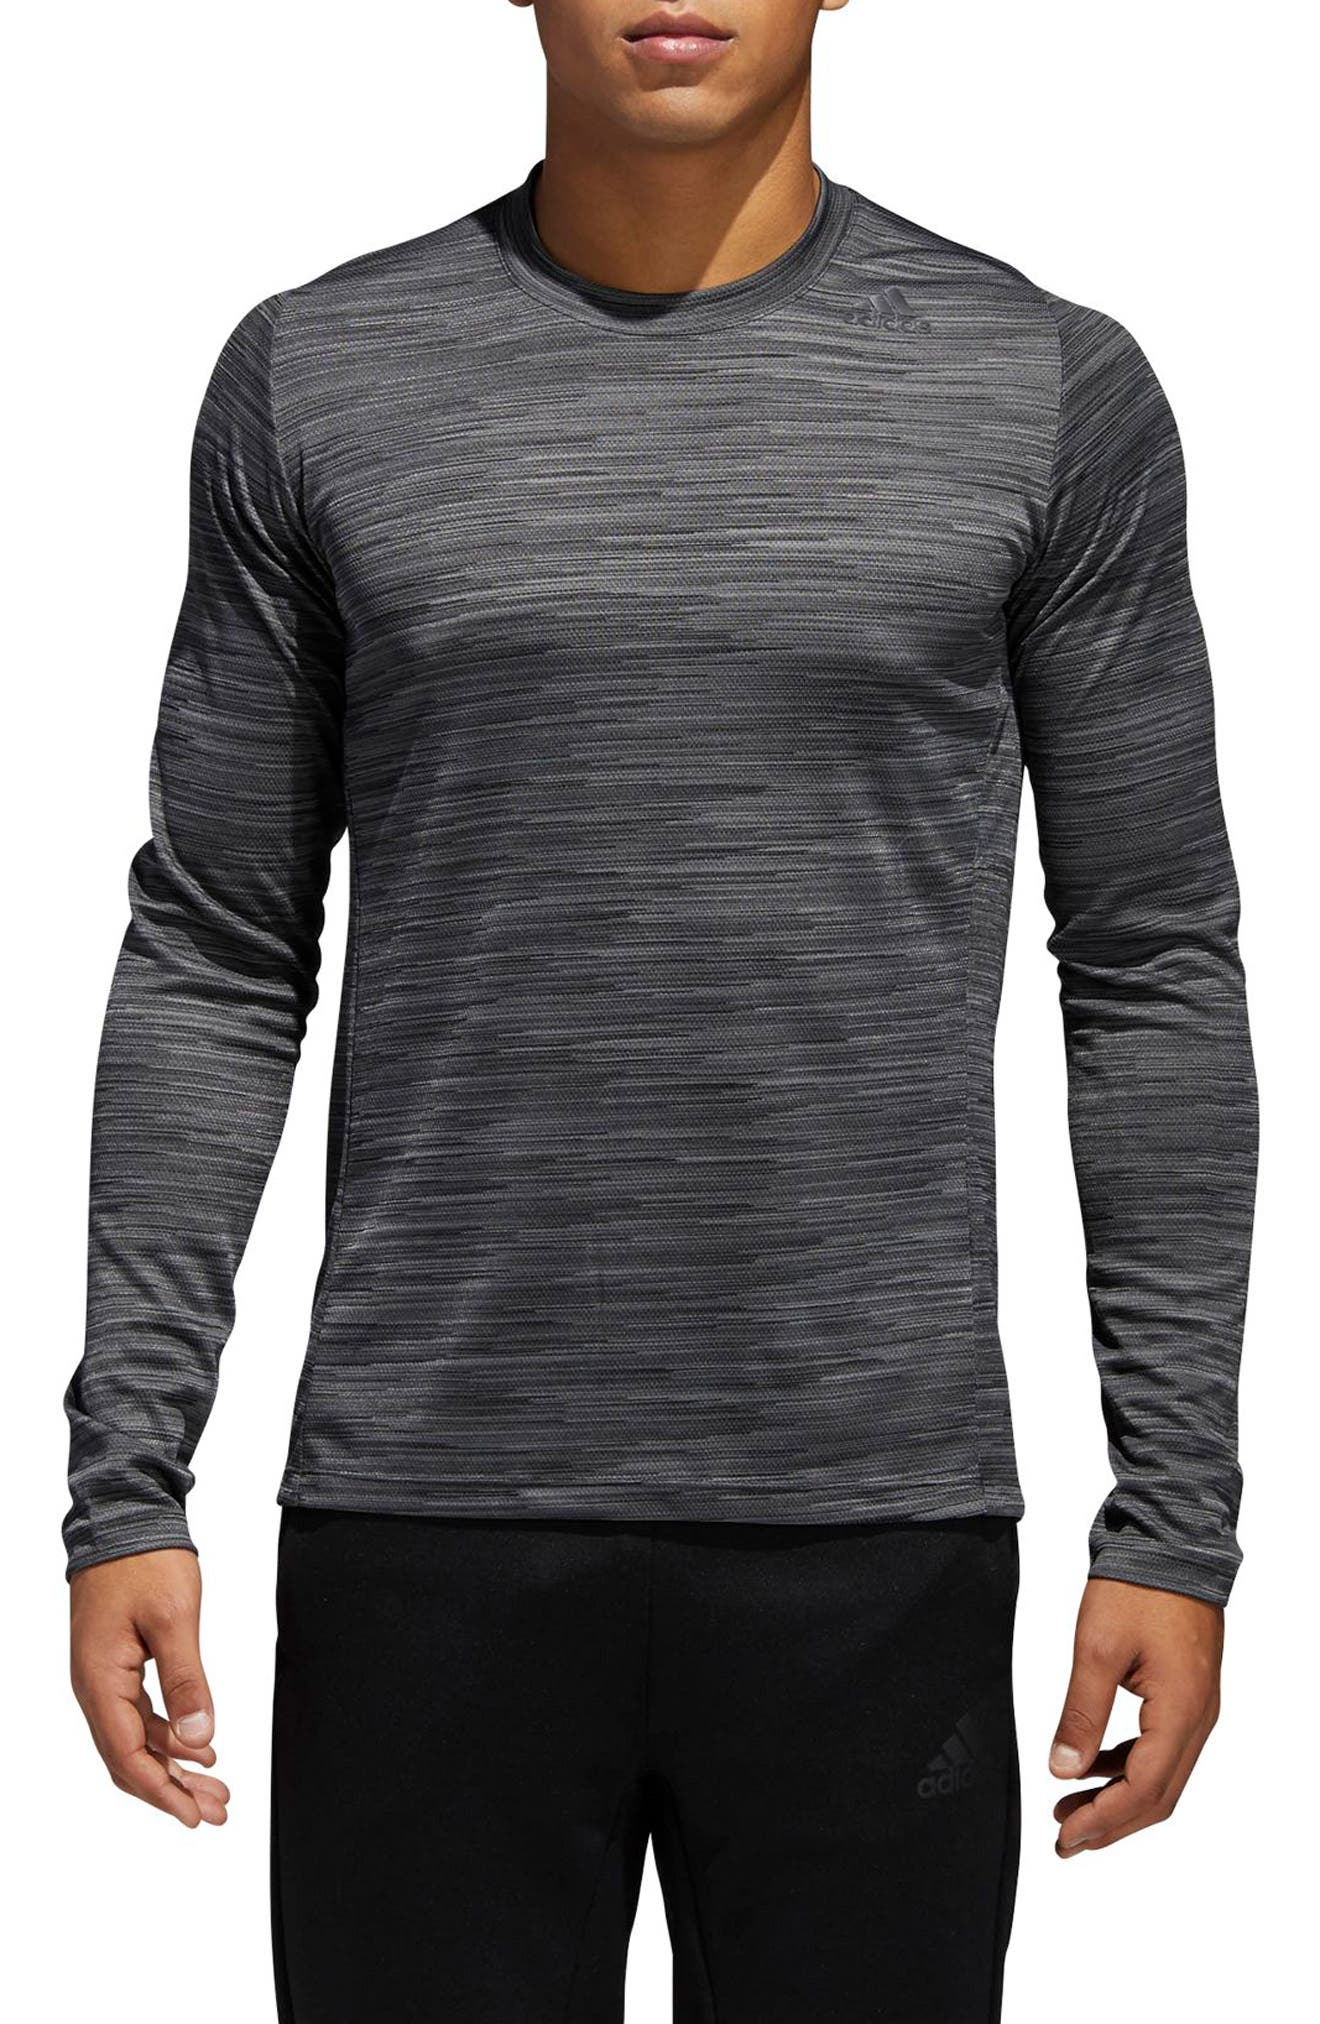 Ultimate Tech Long Sleeve T-Shirt,                             Main thumbnail 1, color,                             099